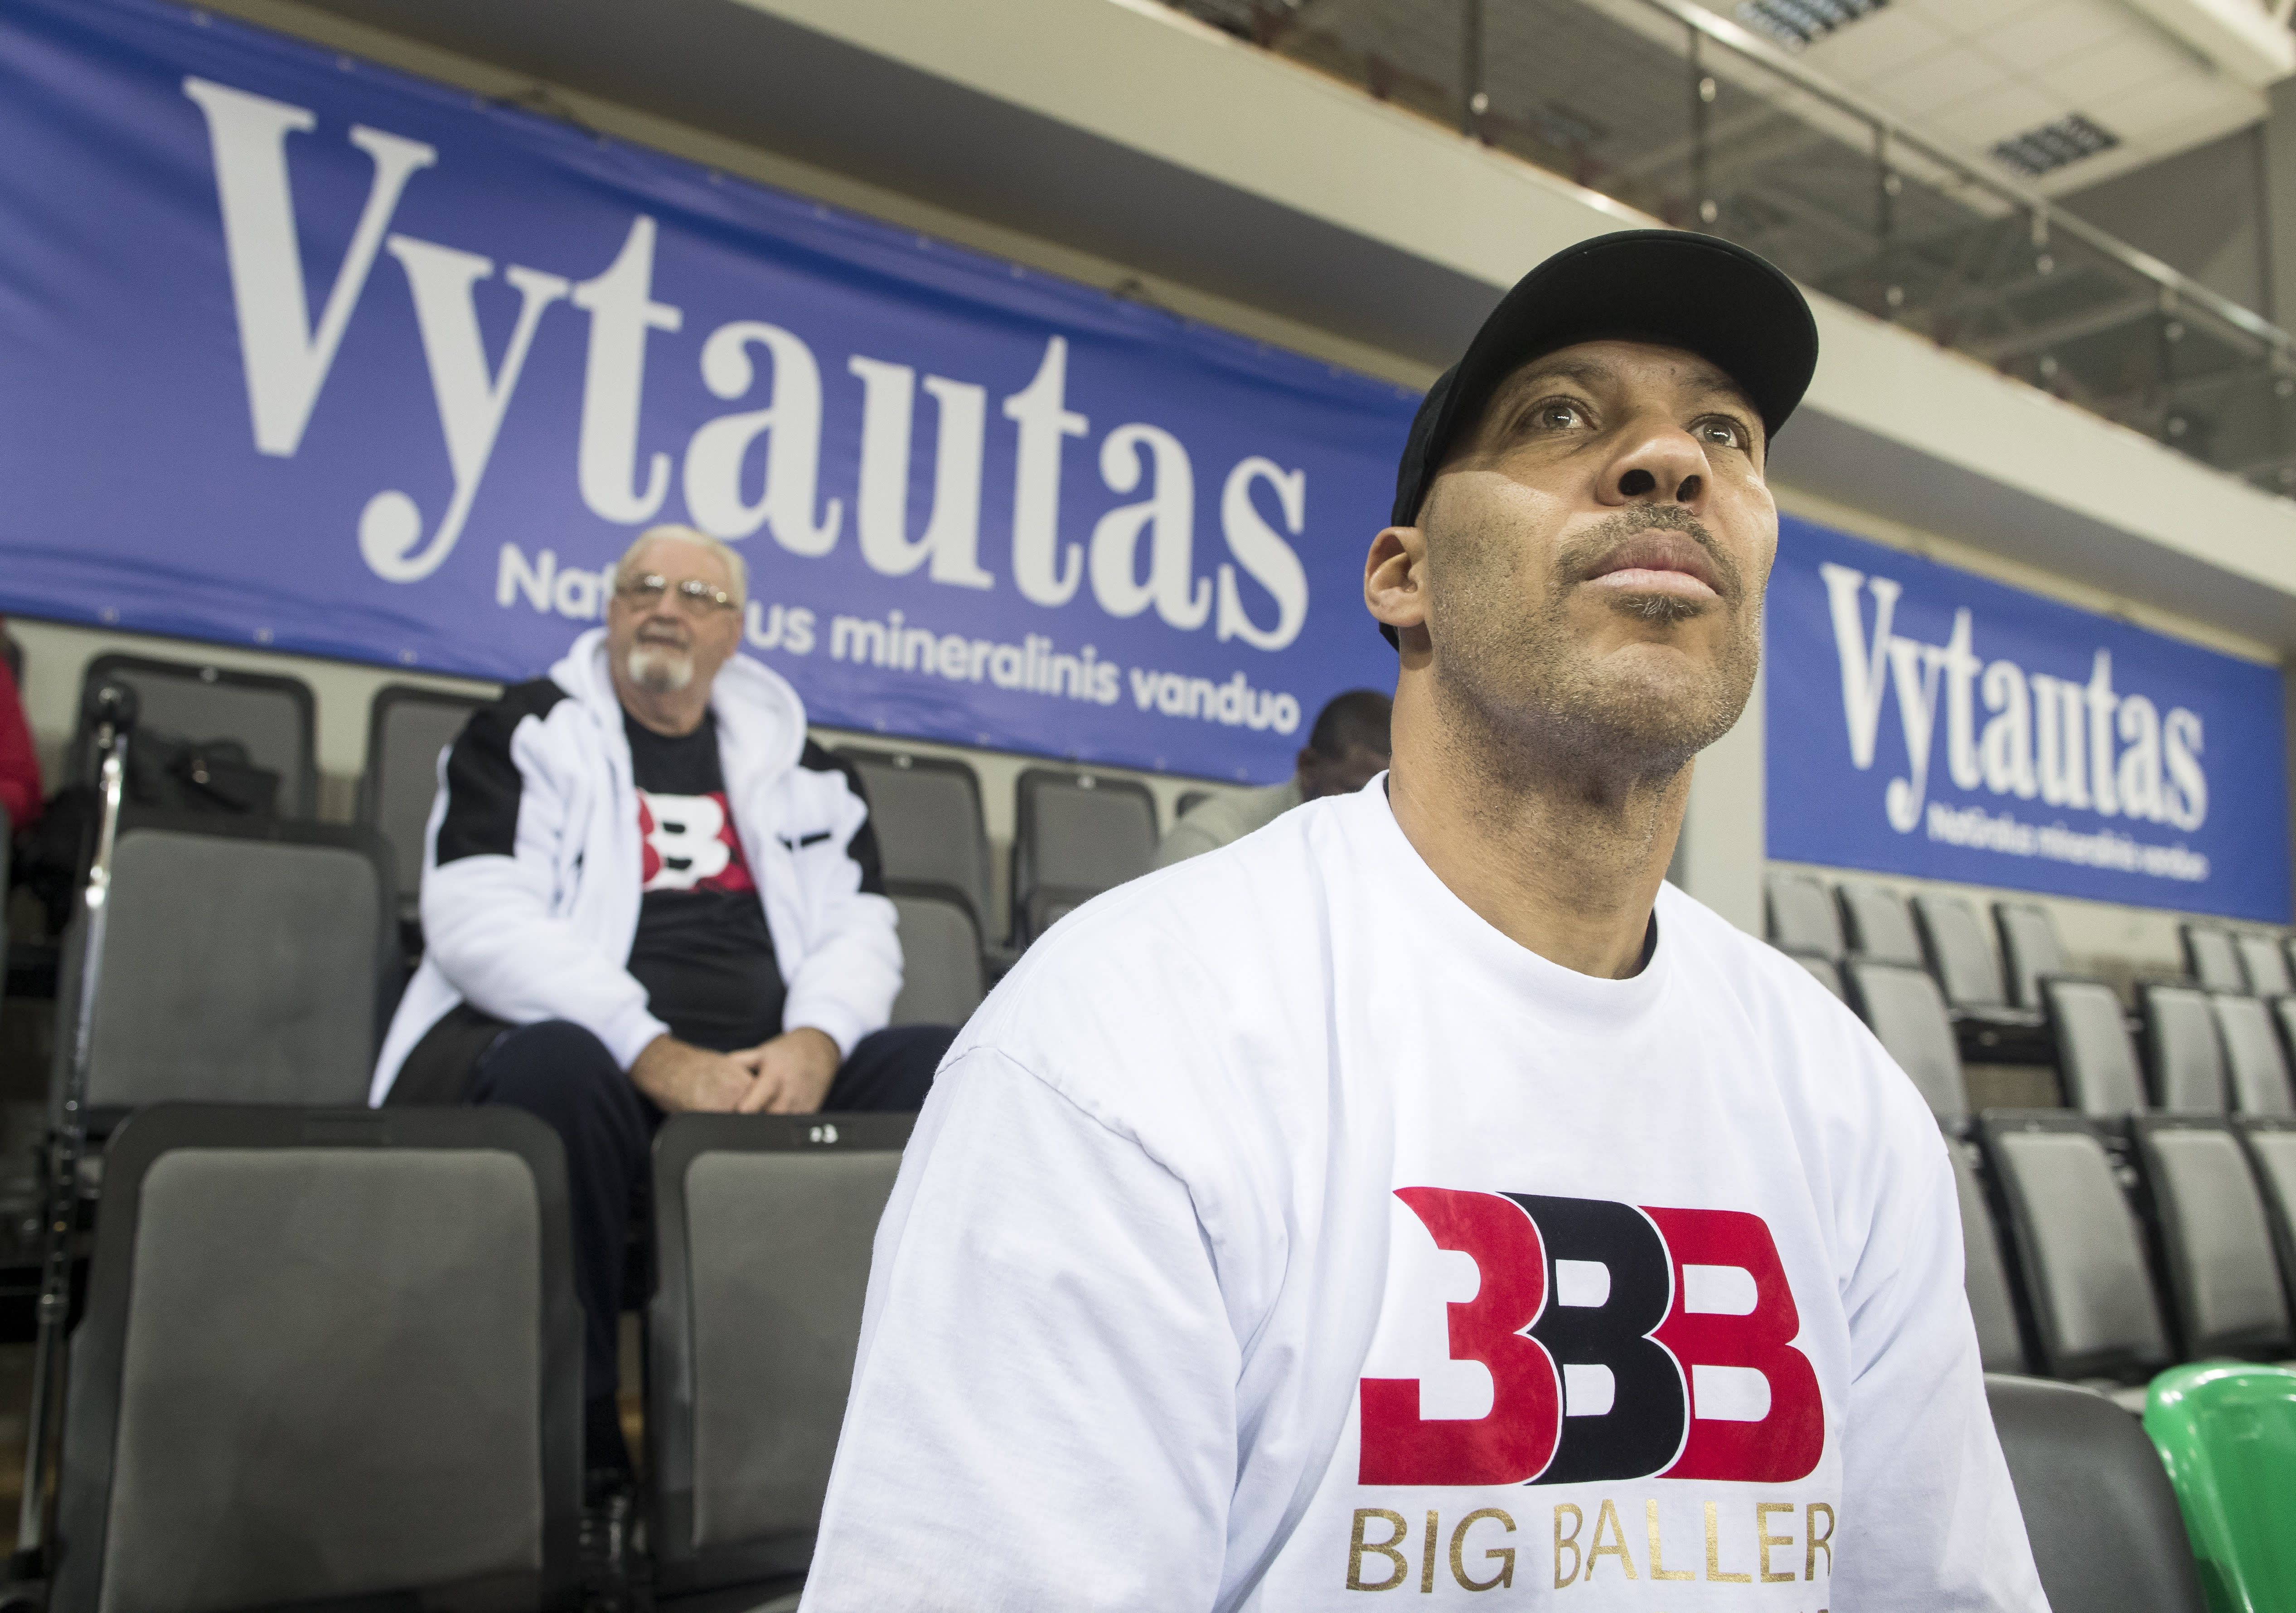 ESPN has 'no plans' to put LaVar Ball on network after inappropriate comment to Molly Qerim